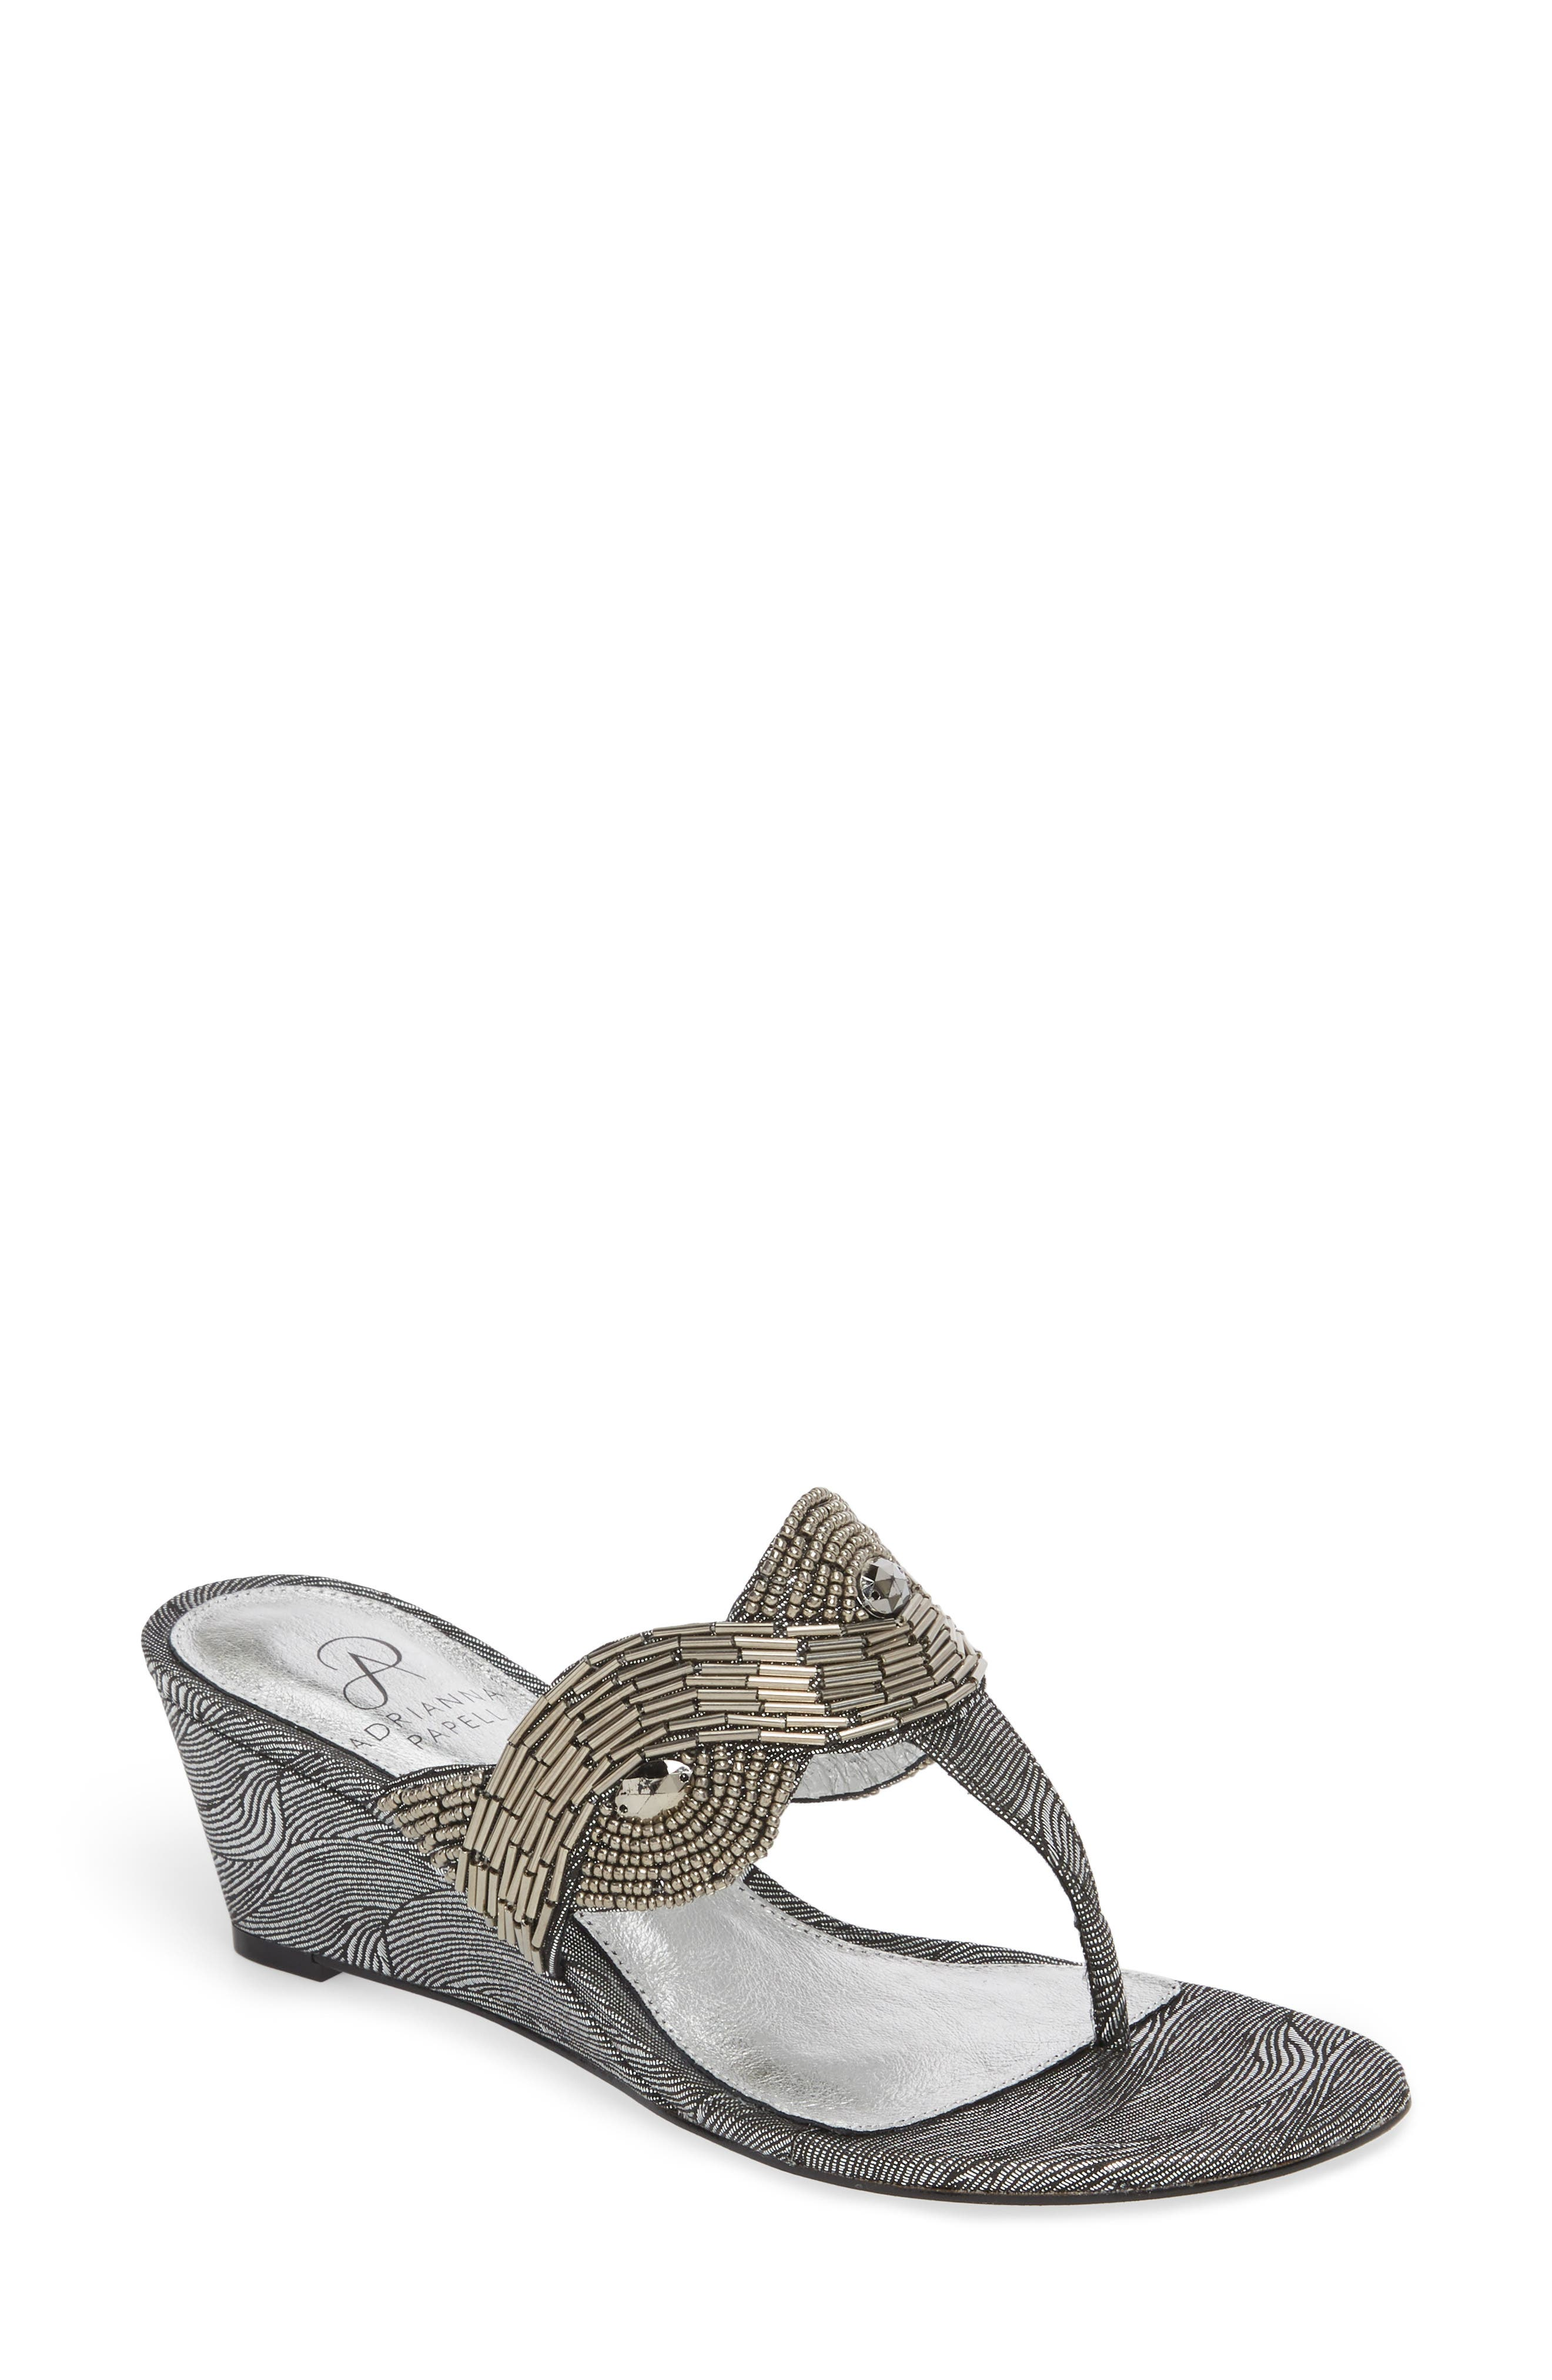 ADRIANNA PAPELL,                             Coco Beaded Wedge Sandal,                             Main thumbnail 1, color,                             049